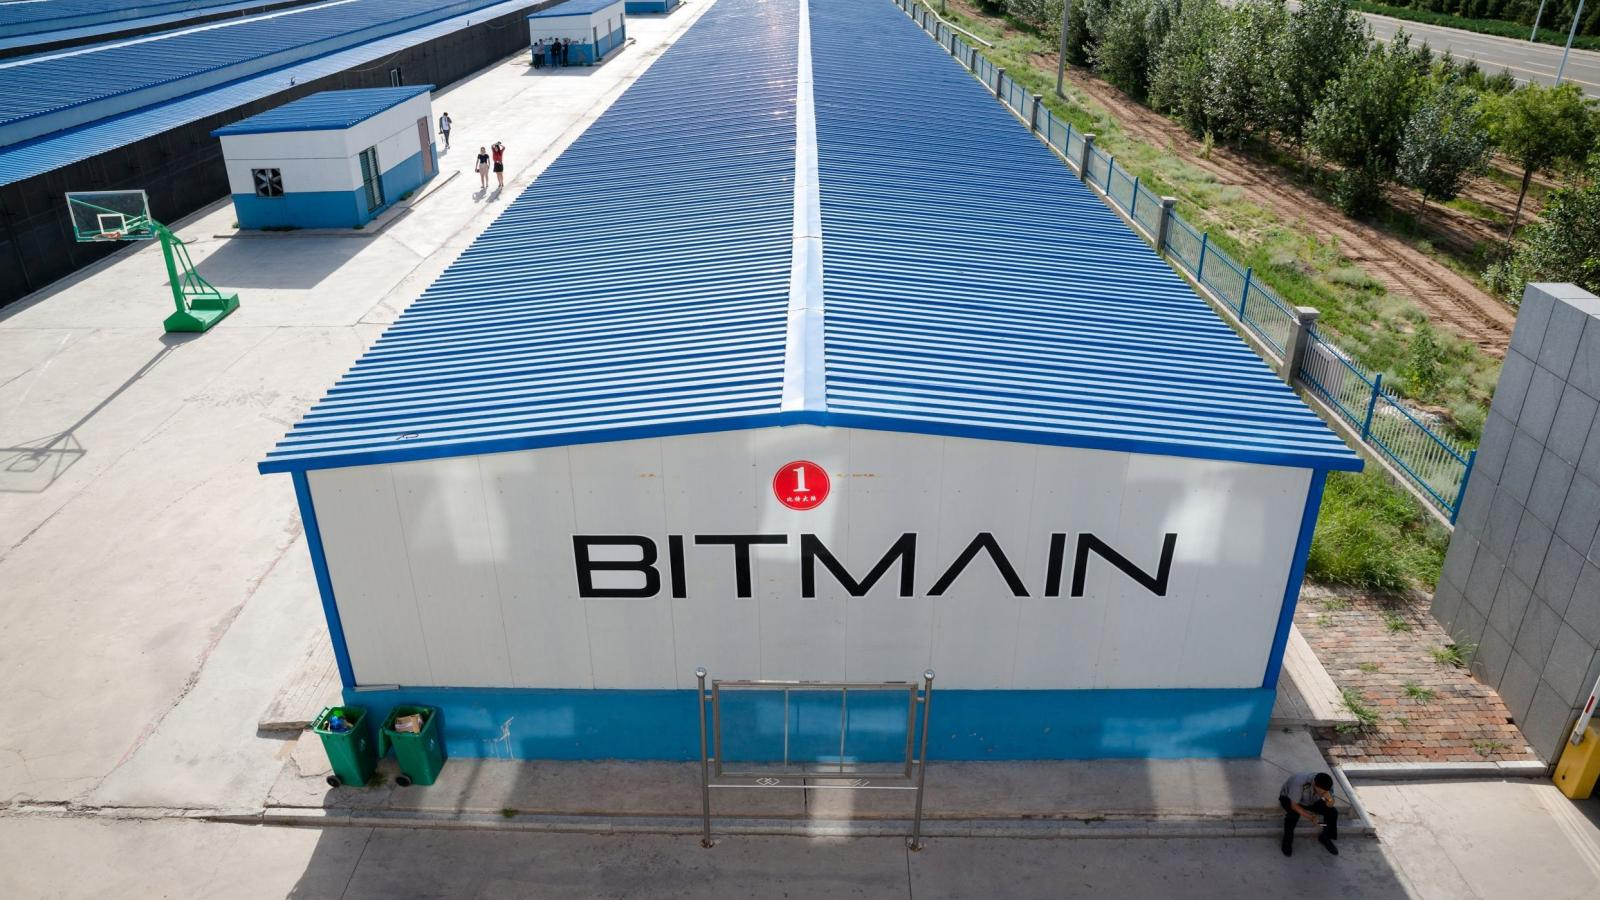 Bitmain IPO: Bitcoin and crypto giant hedges against the market — Quartz